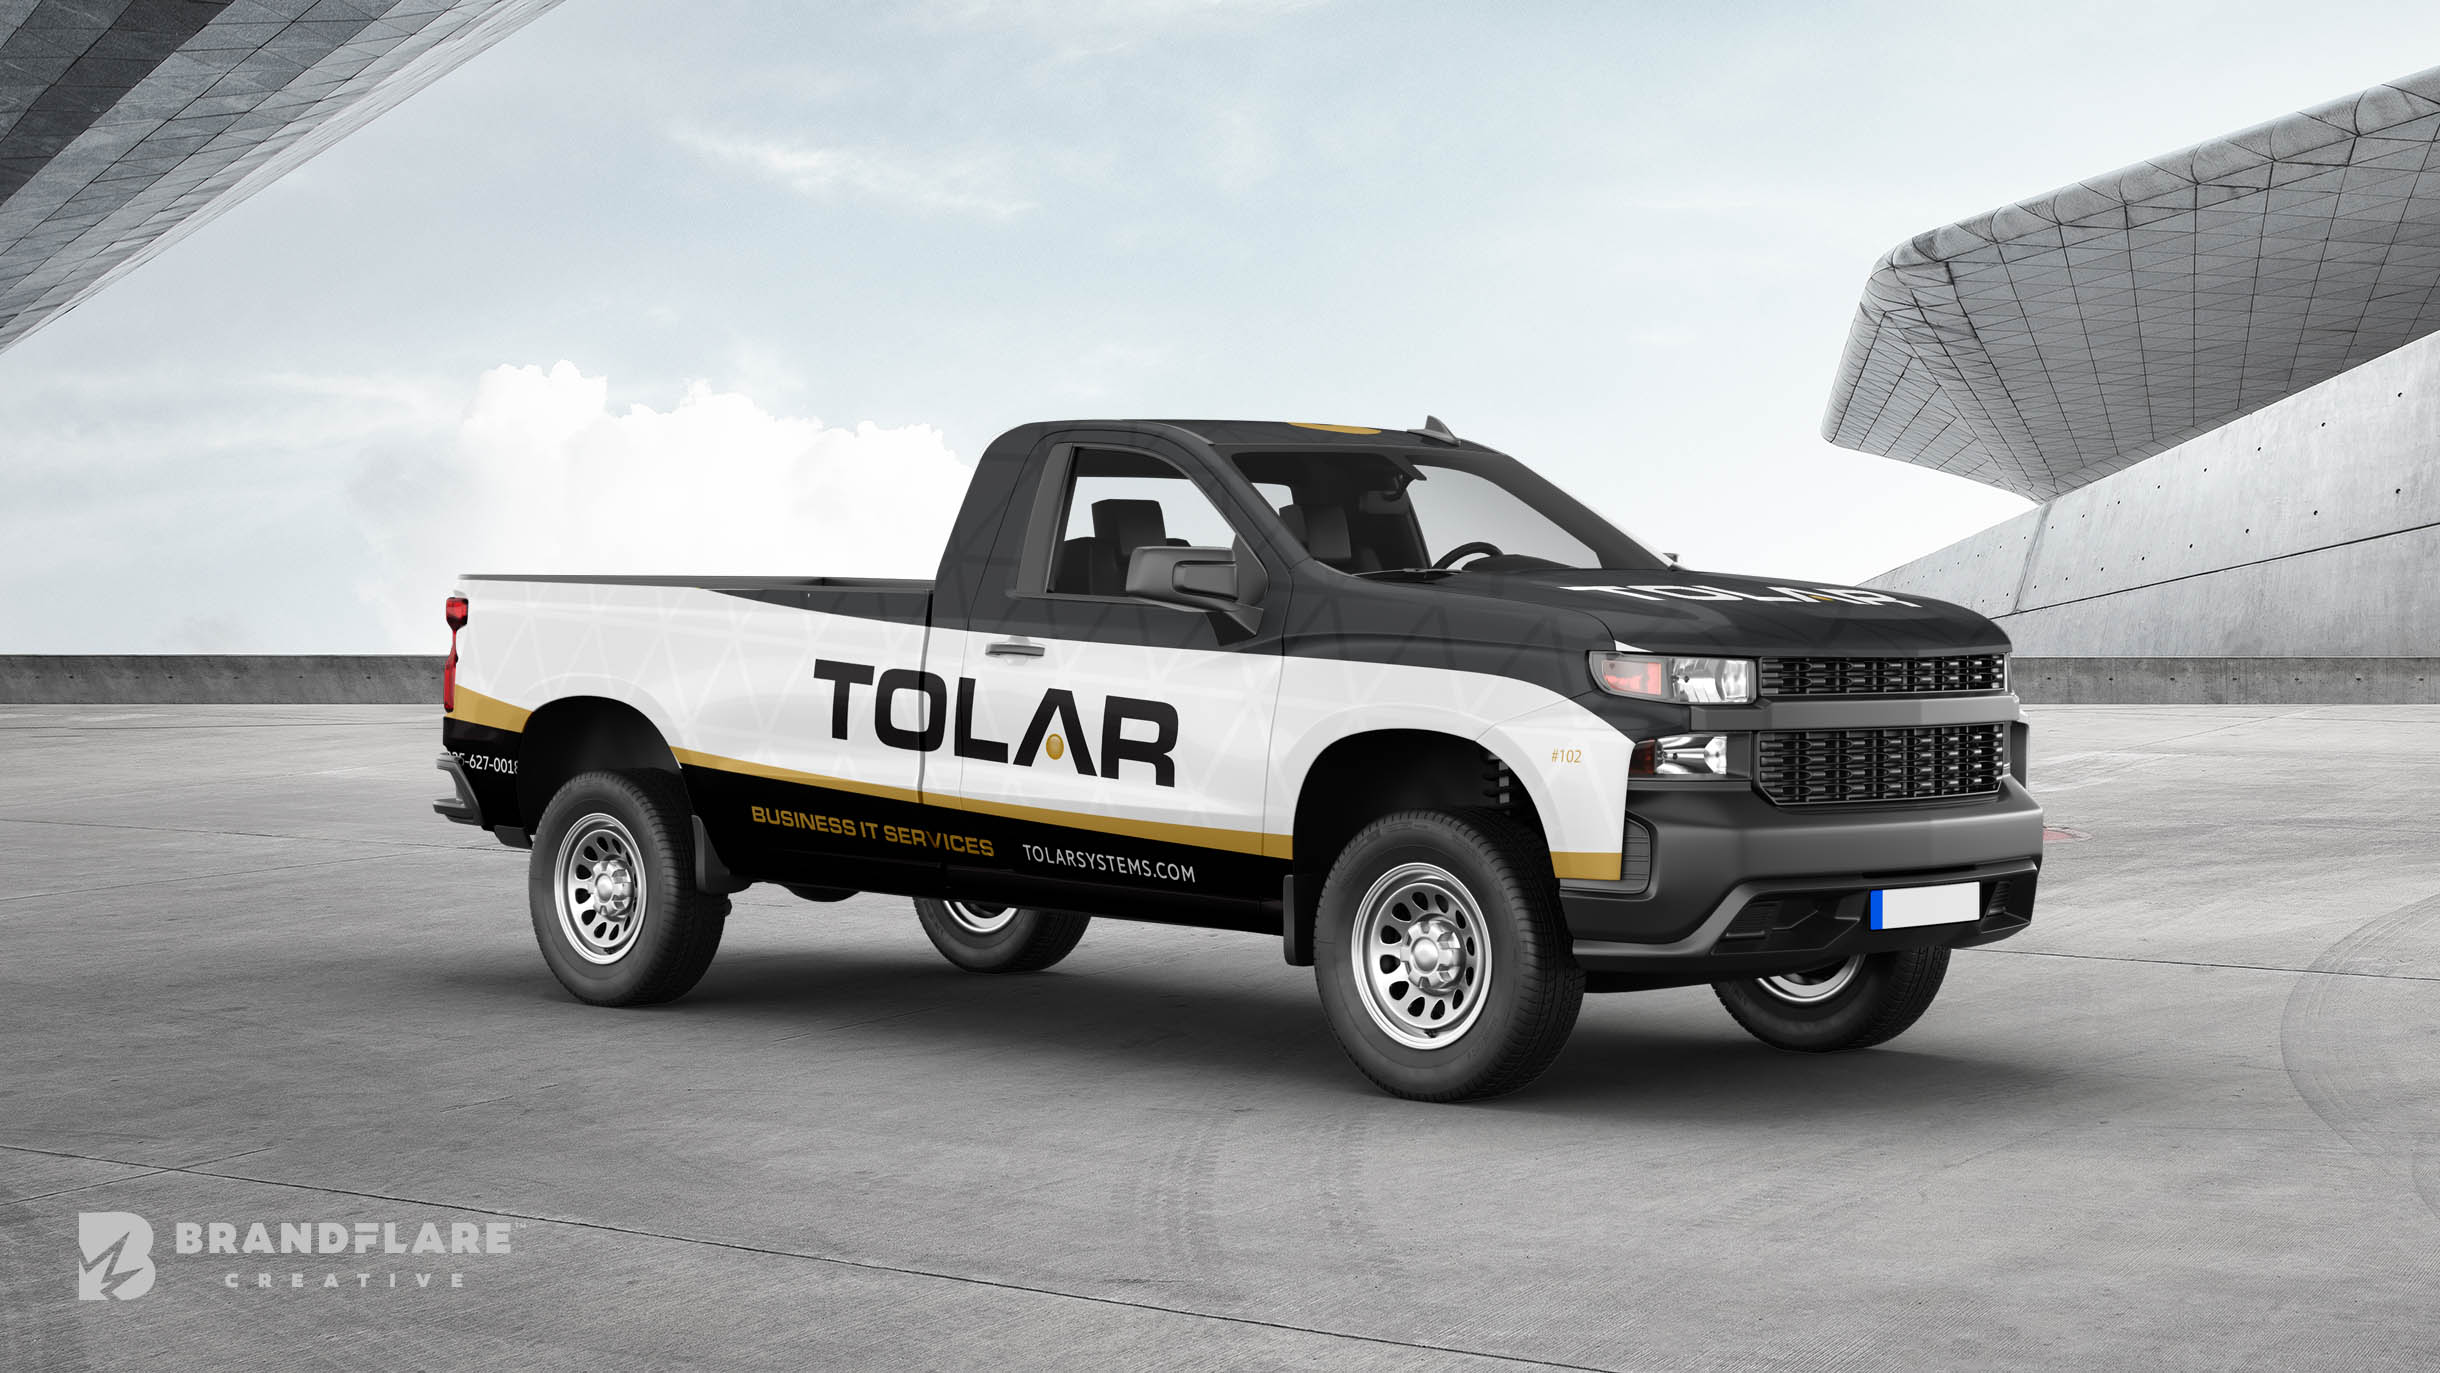 Tolar Systems Truck Wrap - BrandFlare Creative - Vehicle Wrap Design